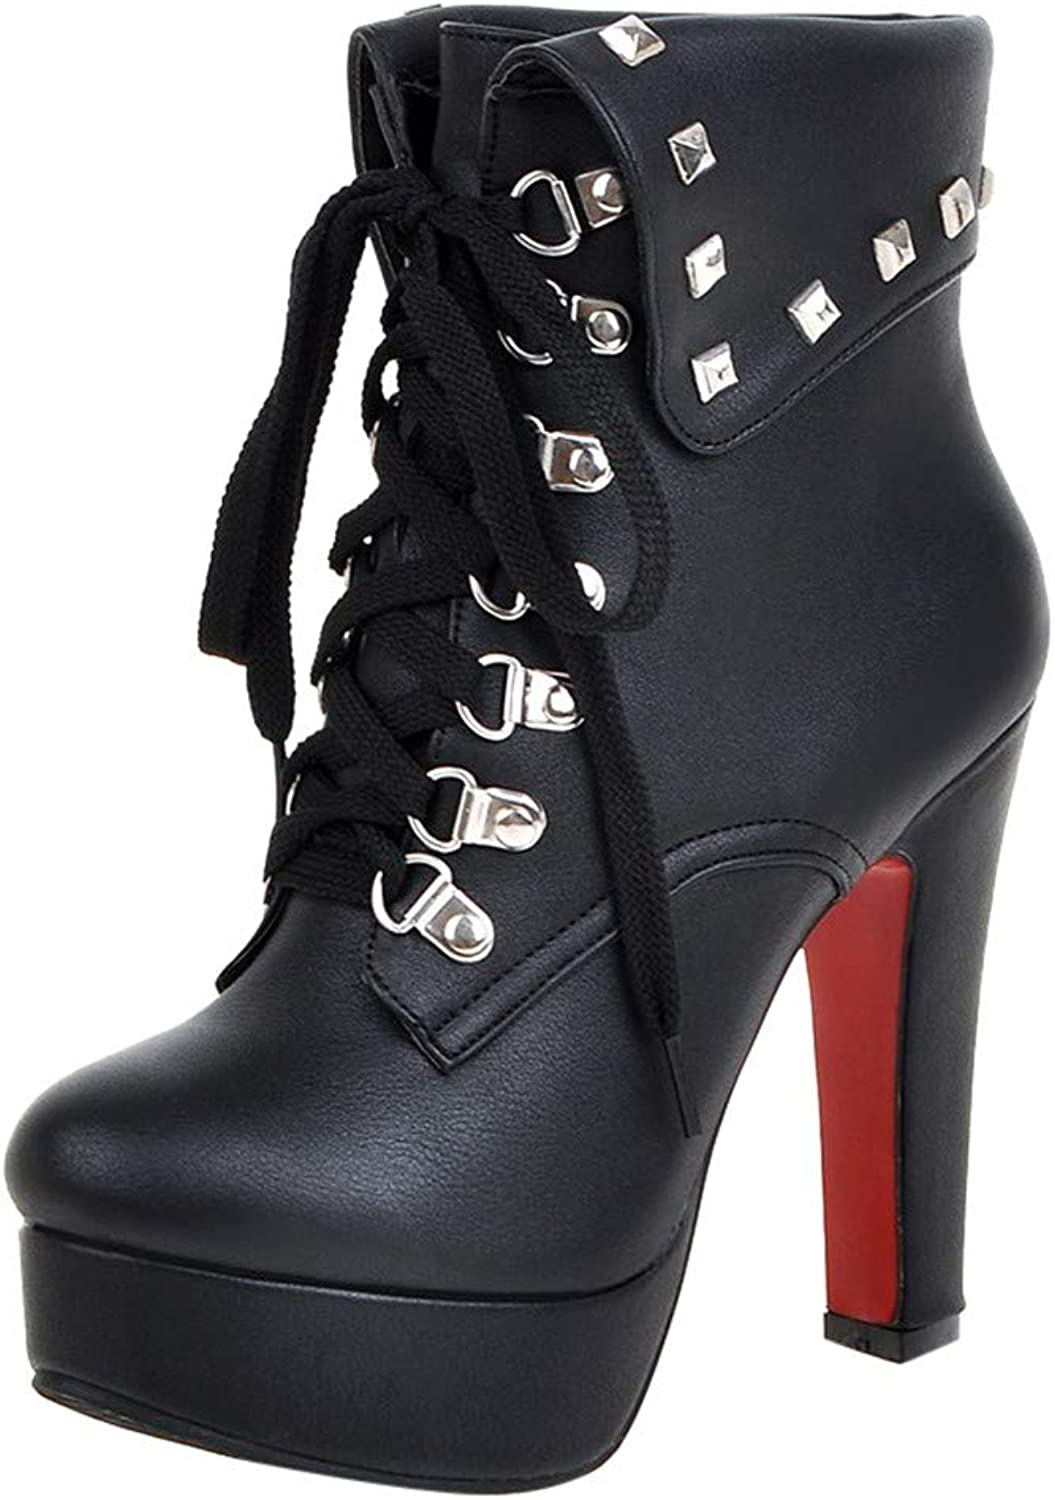 Women shoes, Solid Lace-Up Metal Rivet Thick Super High Heel(8cm-up) Flock Ankle Boots Round Toe Basic shoes